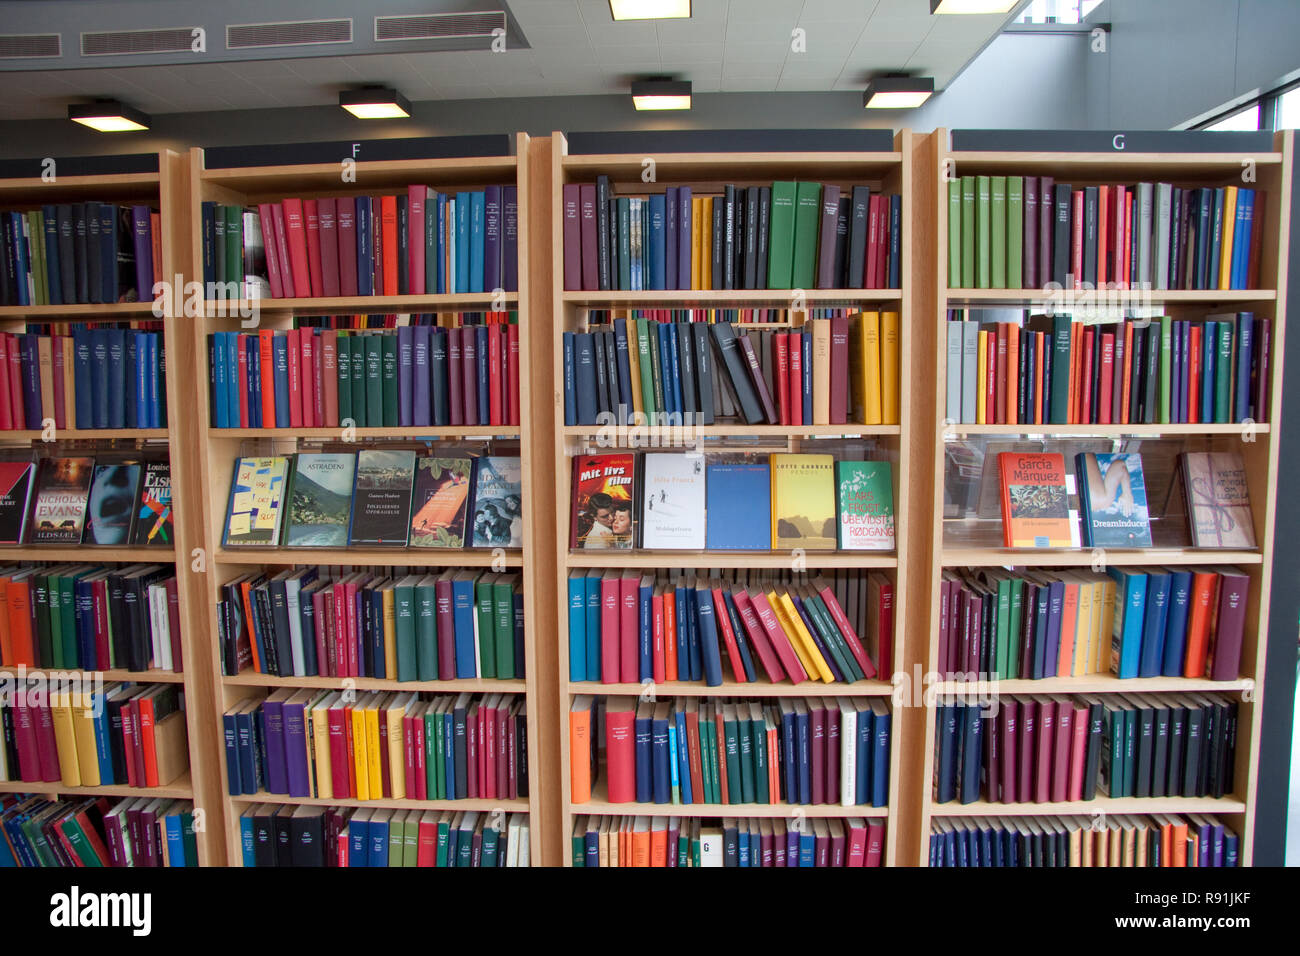 Books On Shelves At A Public Library Stock Photo: 229303299 - Alamy